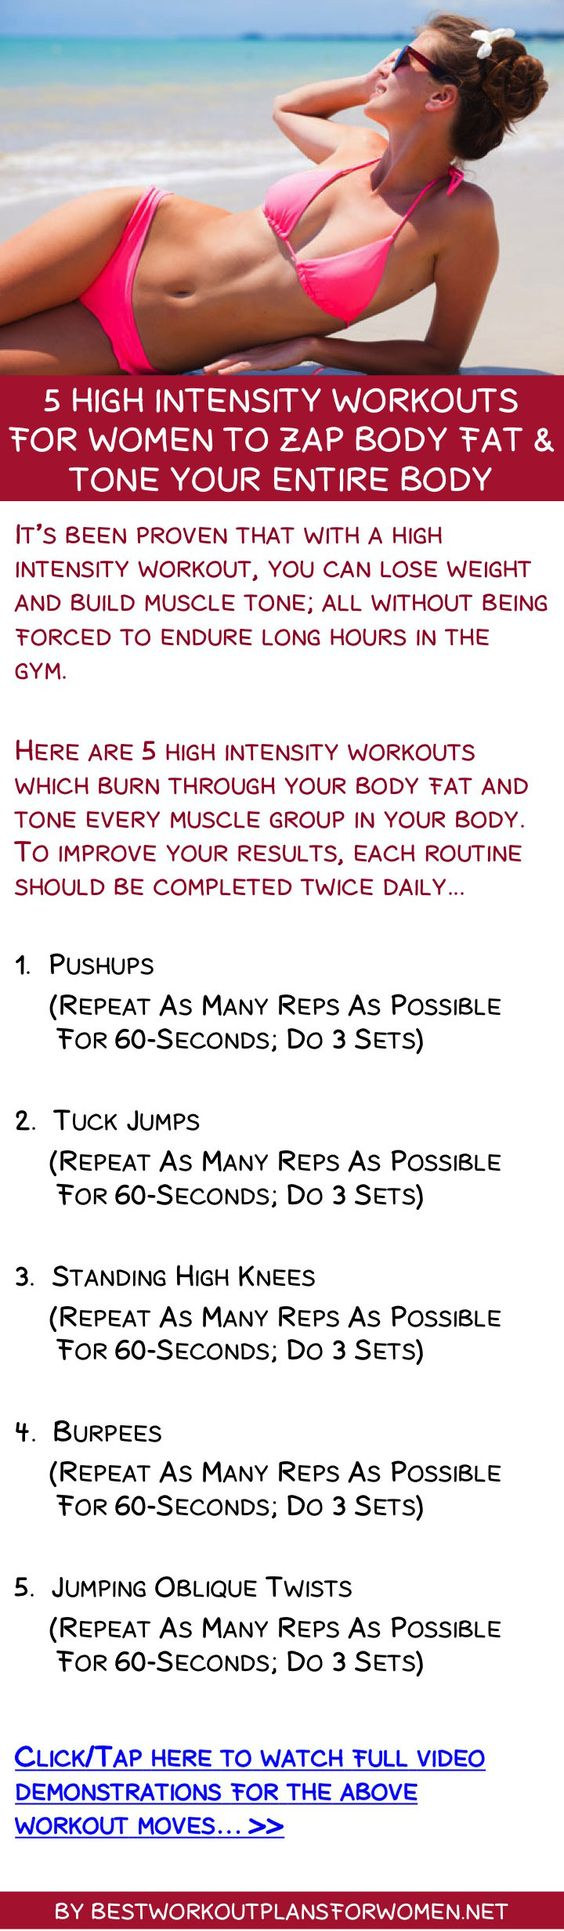 5 high intensity workouts for women to zap body fat & tone your entire body http://janice.automaticbodyhub.com